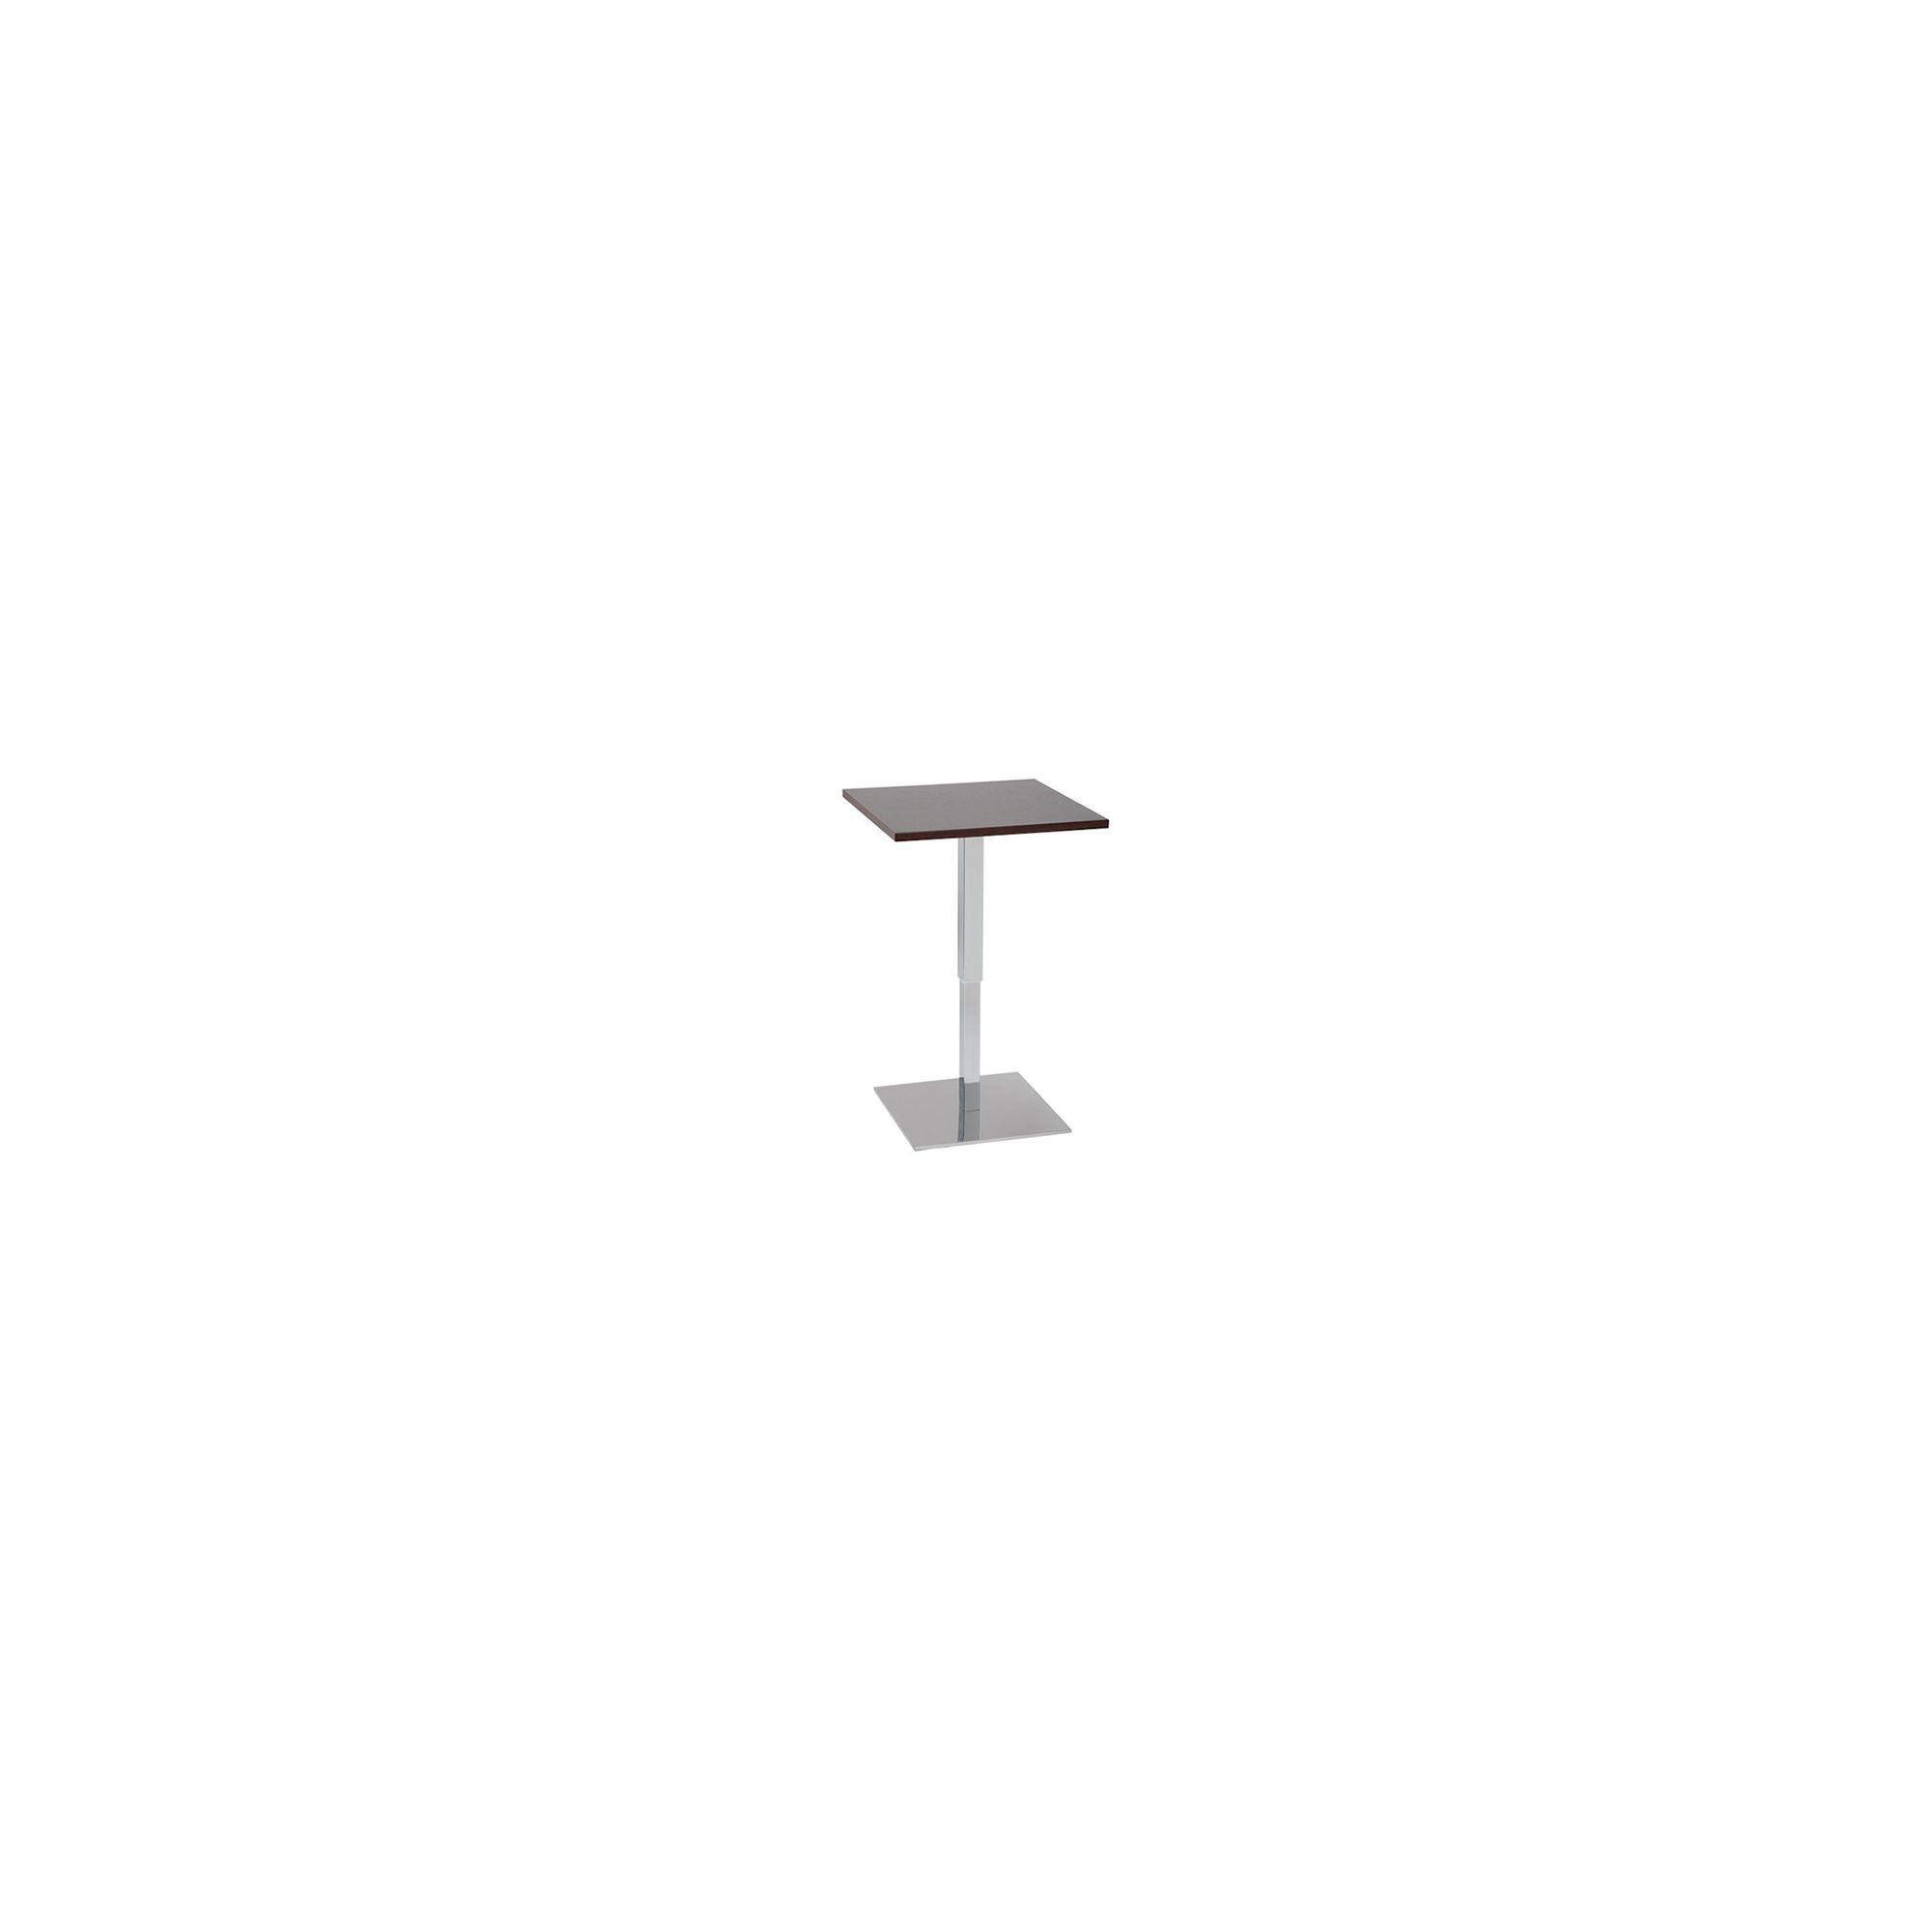 Pro Global Comfort Gas Lift Square Bar Table - 60 cm - Black at Tescos Direct